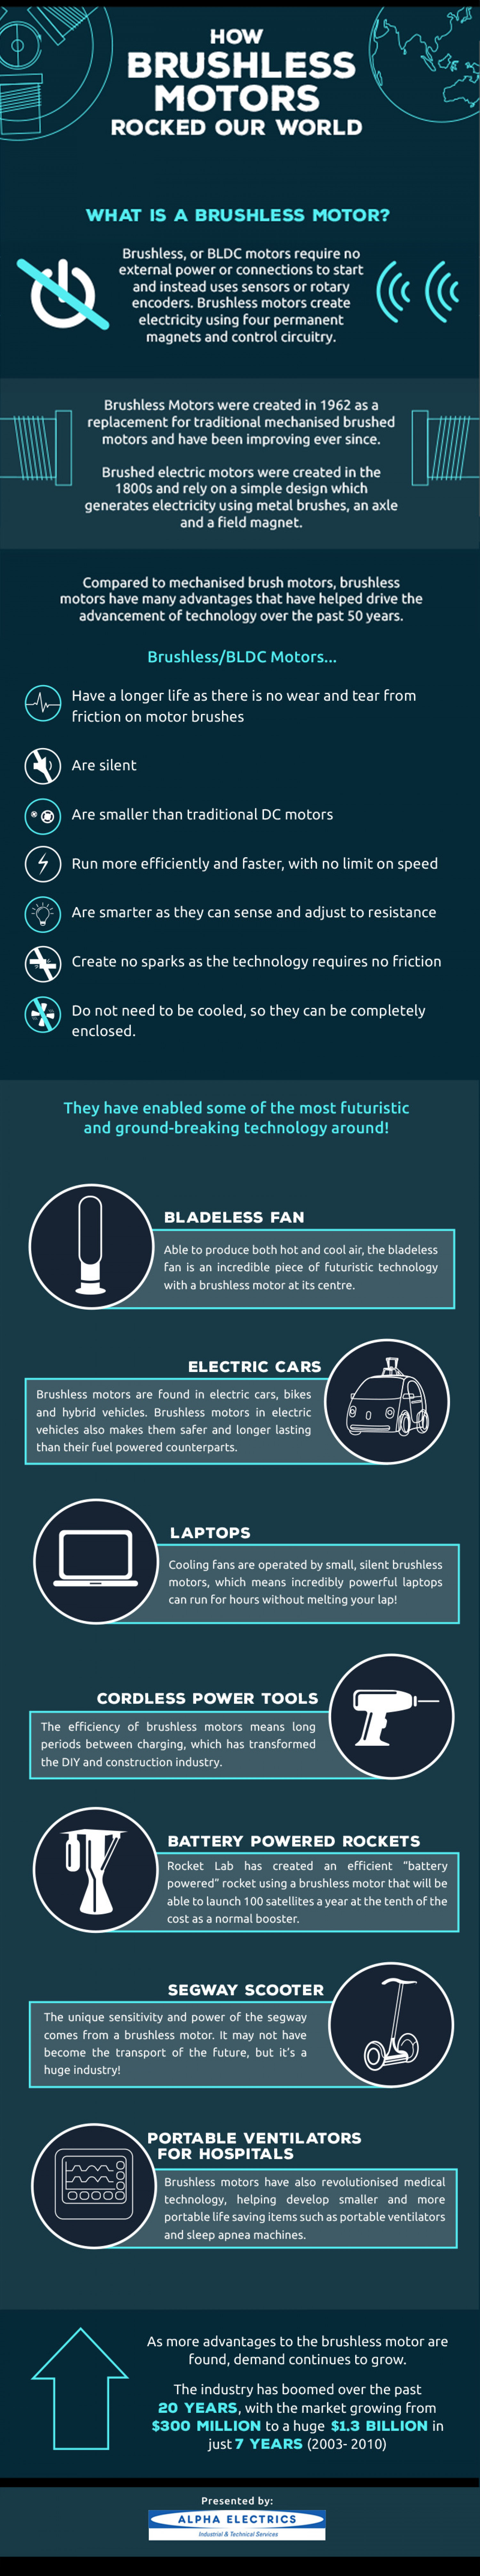 How Brushless Motors Rocked Our World Infographic